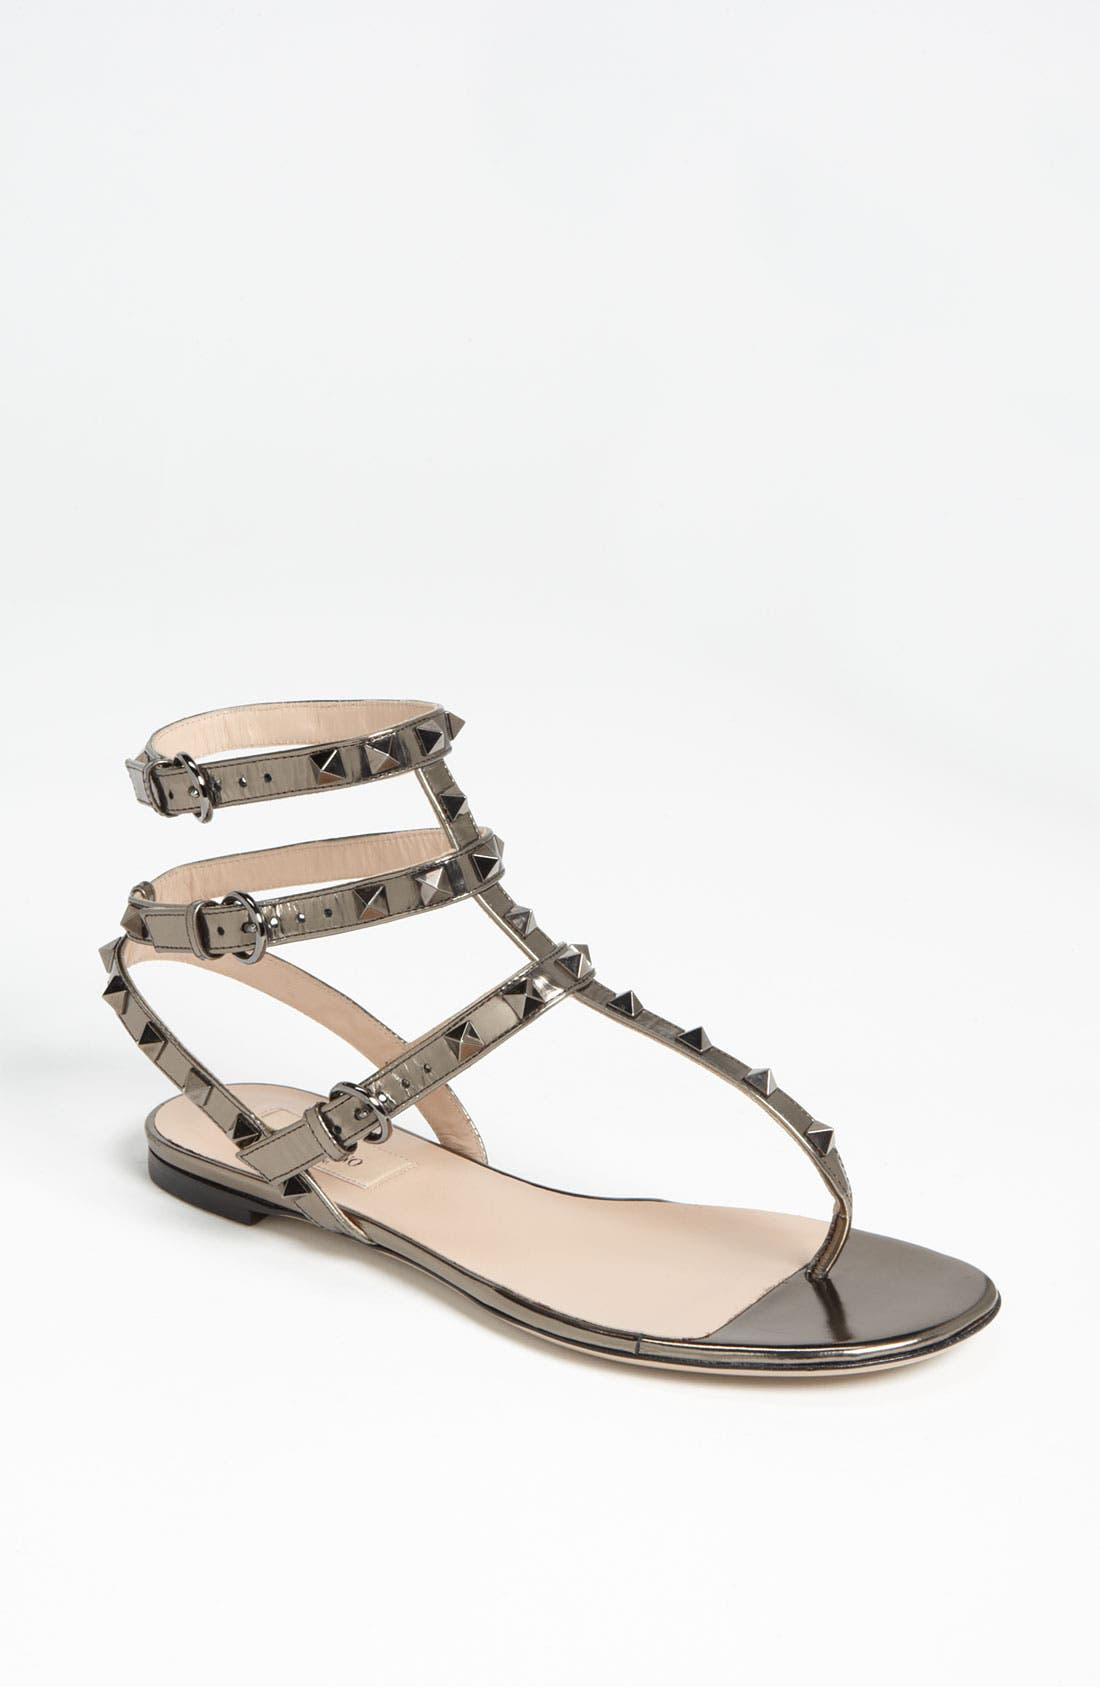 Alternate Image 1 Selected - Valentino 'Rockstud' Flat Sandal